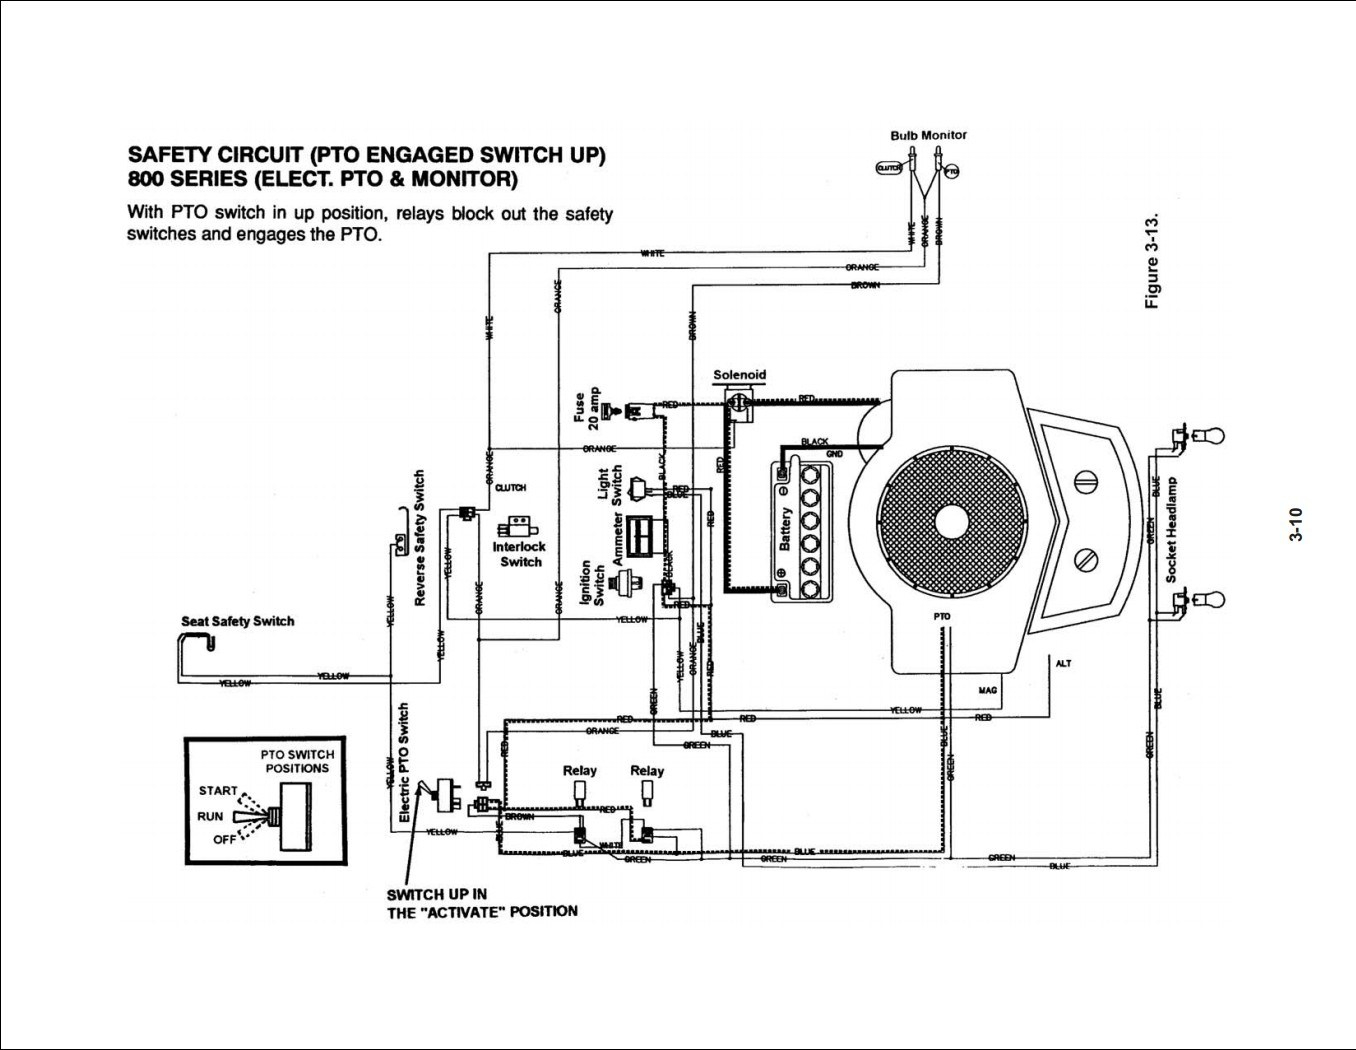 Briggs And Stratton Ignition Wiring Diagram - Wiring Data Diagram - Briggs And Stratton Wiring Diagram 16 Hp